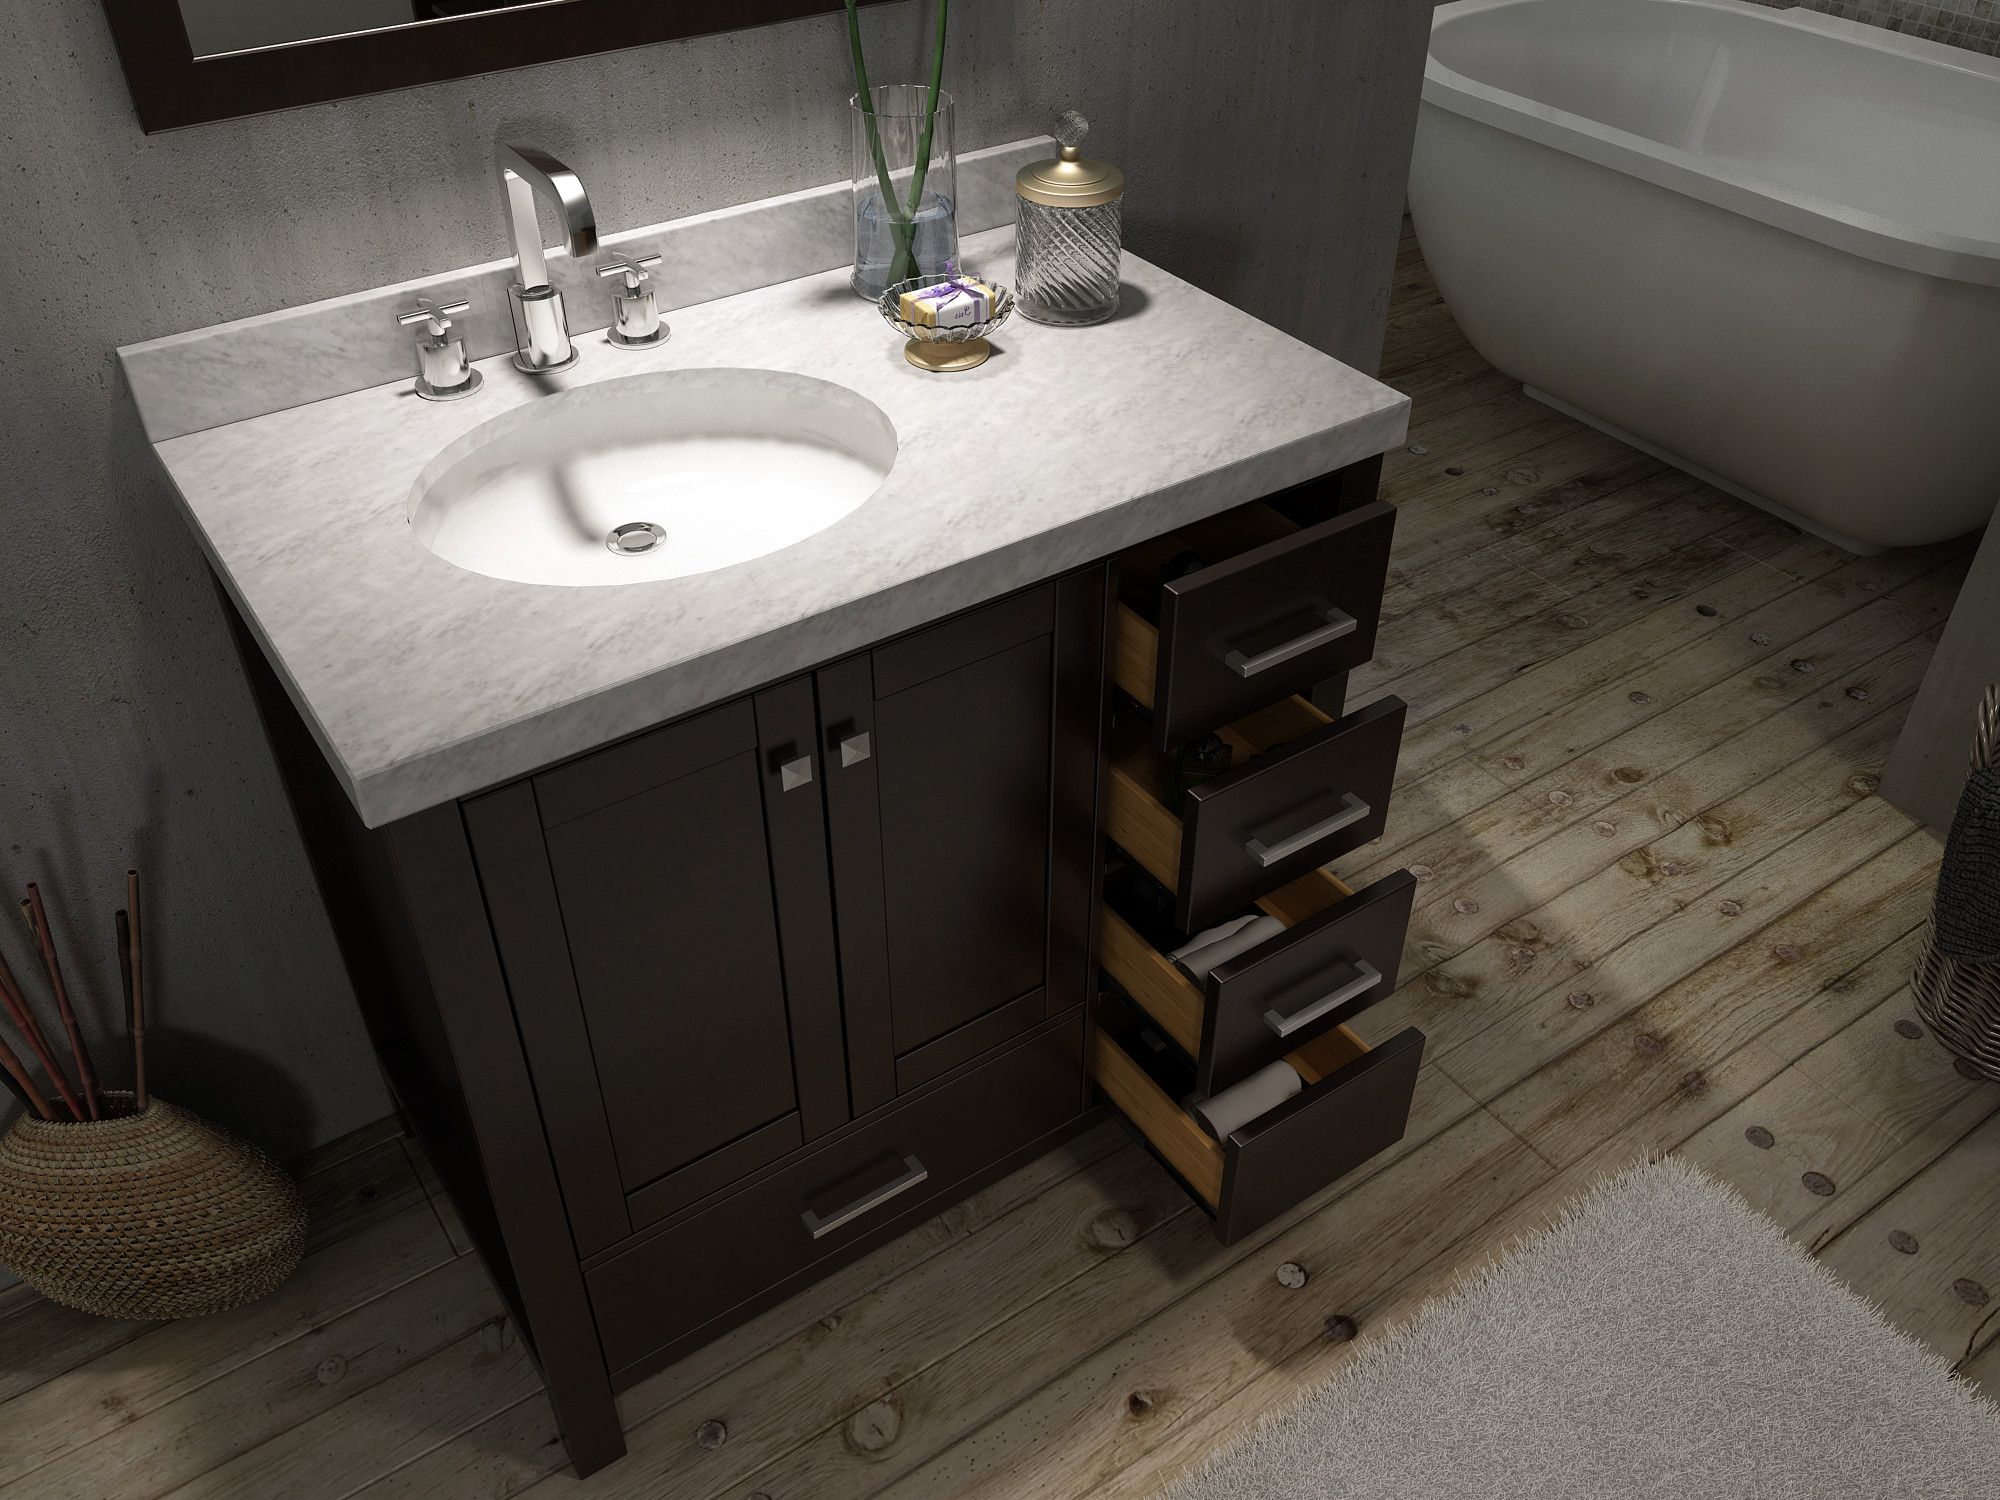 42 Bathroom Vanity Canada With Top With Offset Sink Vanity Sink